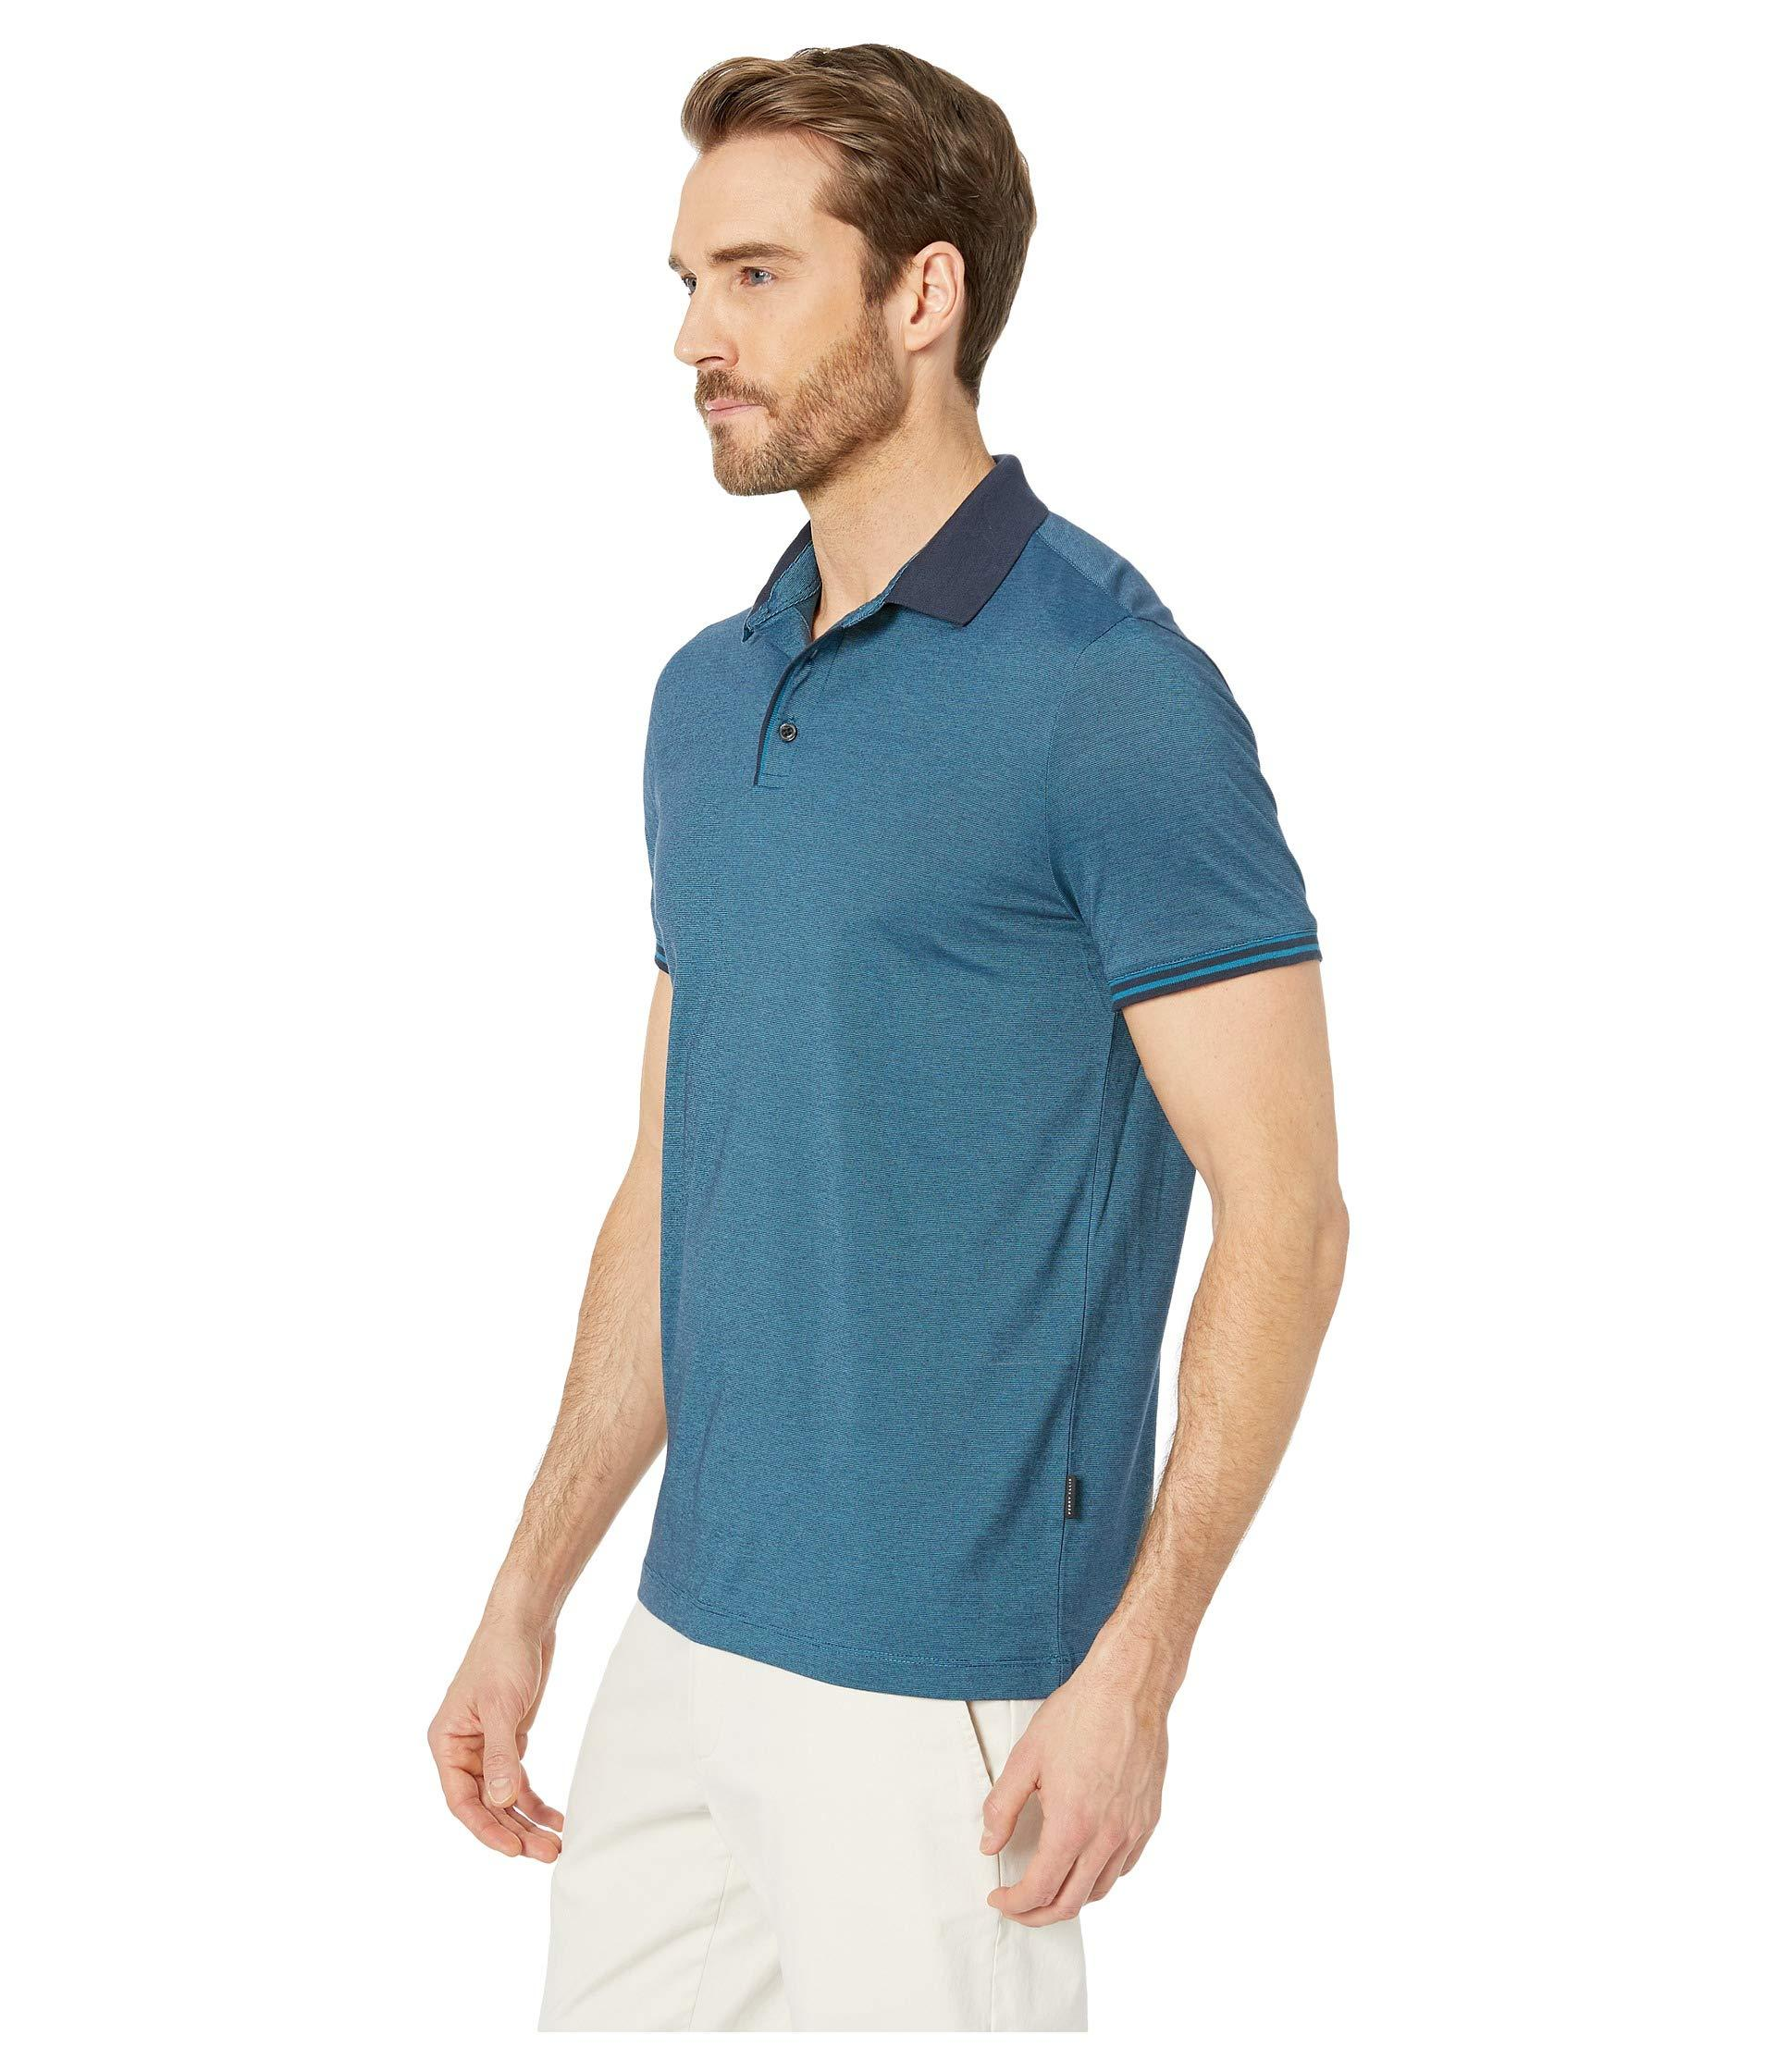 e2df2accac Lyst - Perry Ellis Essential End On End Polo (dark Sapphire 1) Men s  Clothing in Blue for Men